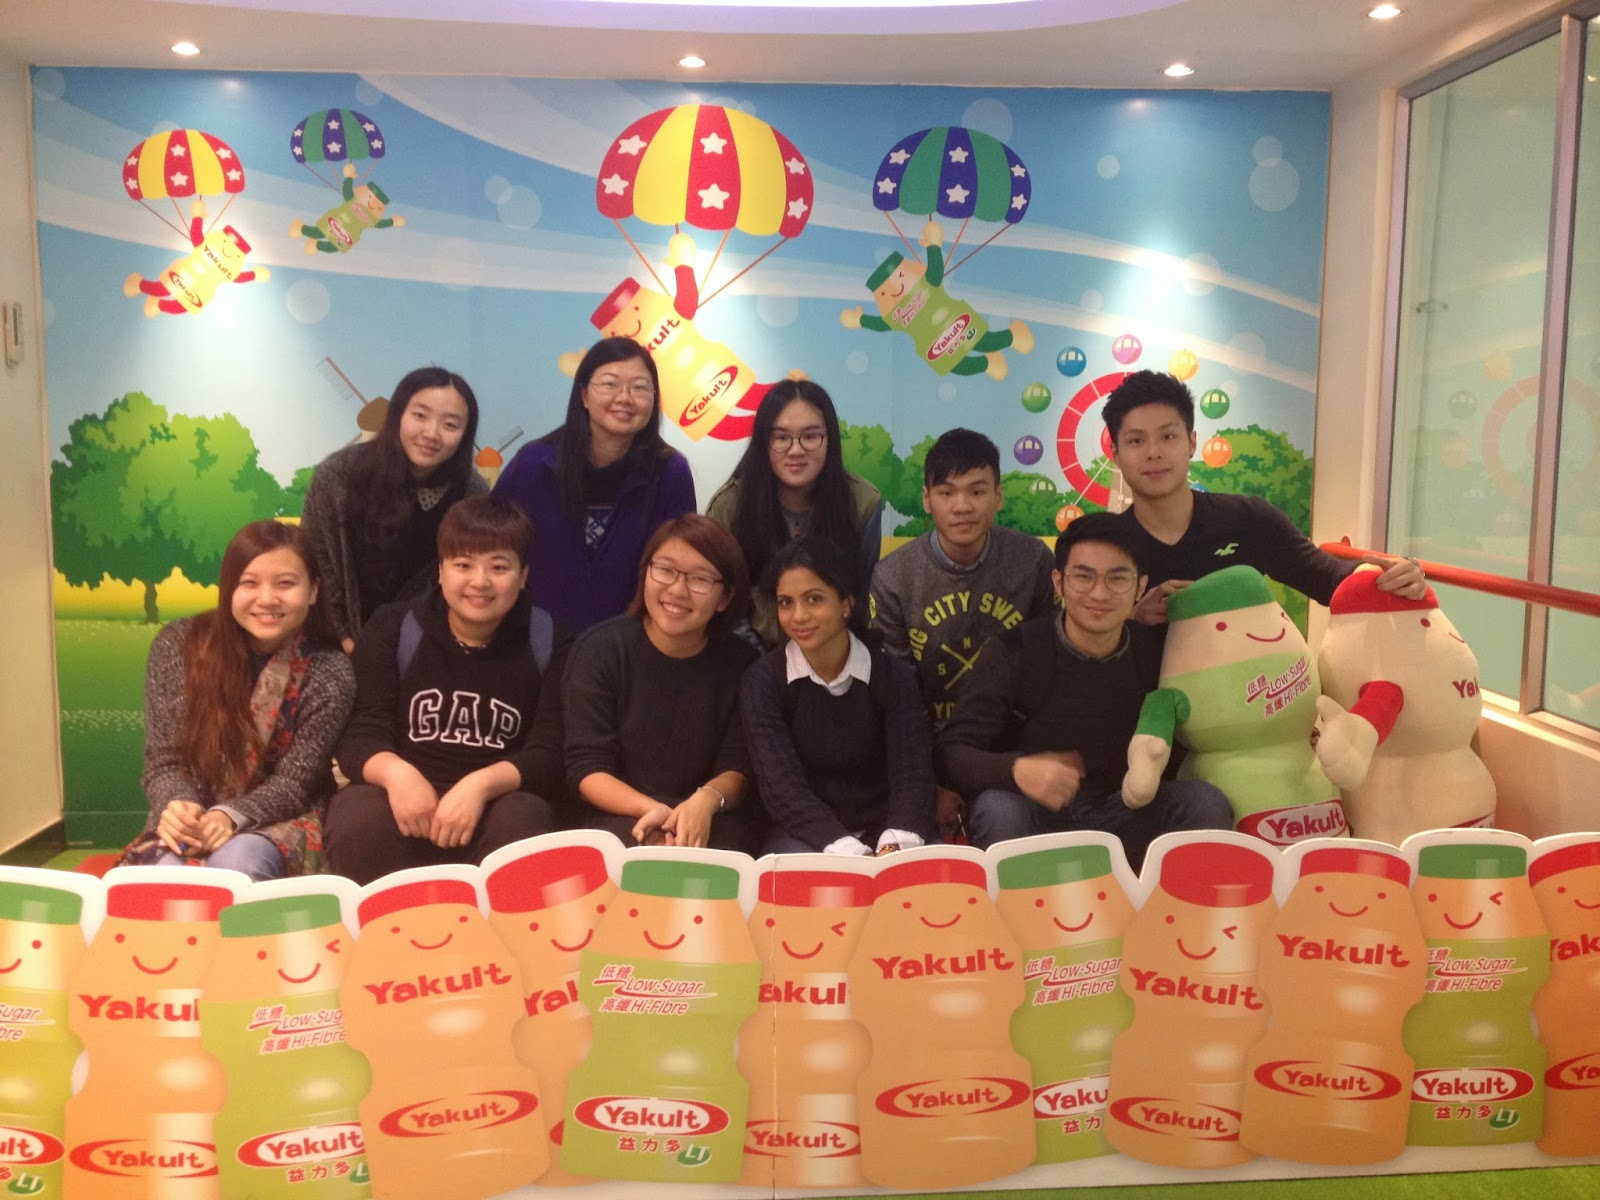 Our Group Photo Took In Yakult